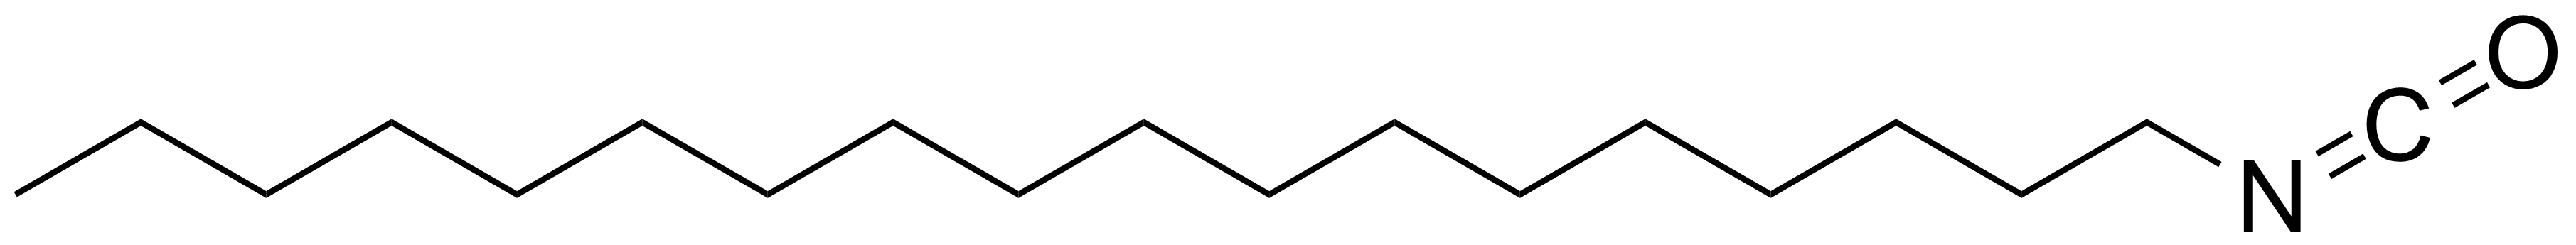 Structure of 1-Octadecyl isocyanate